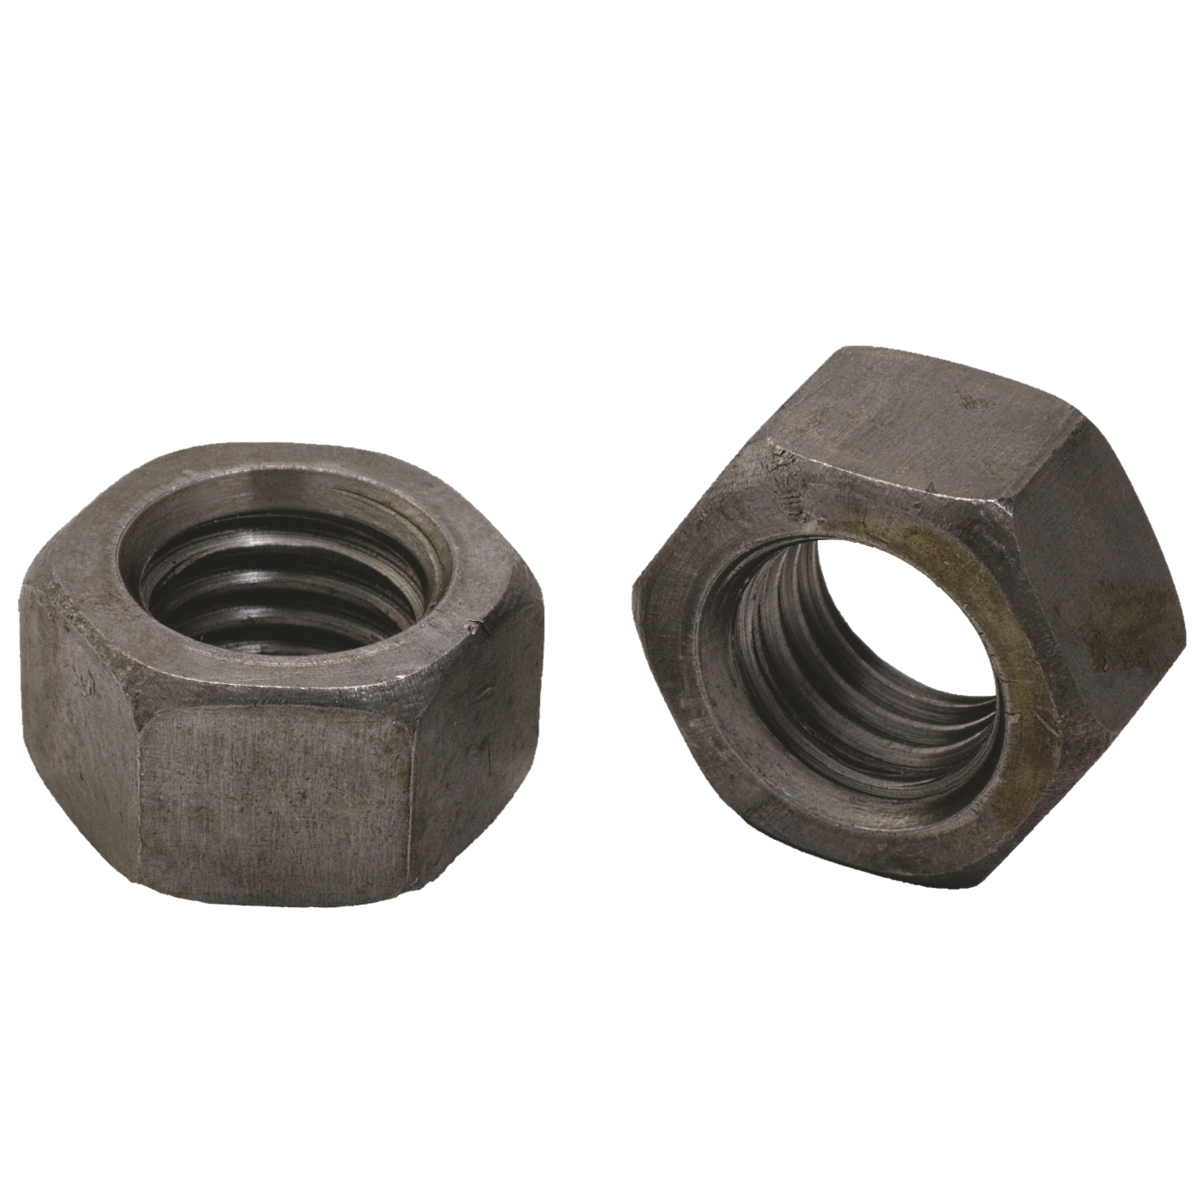 """1-1/8""""-12 Finished Hex Full Nuts — ASTM A563 Grade A, Plain, Fine, 1/PKG"""